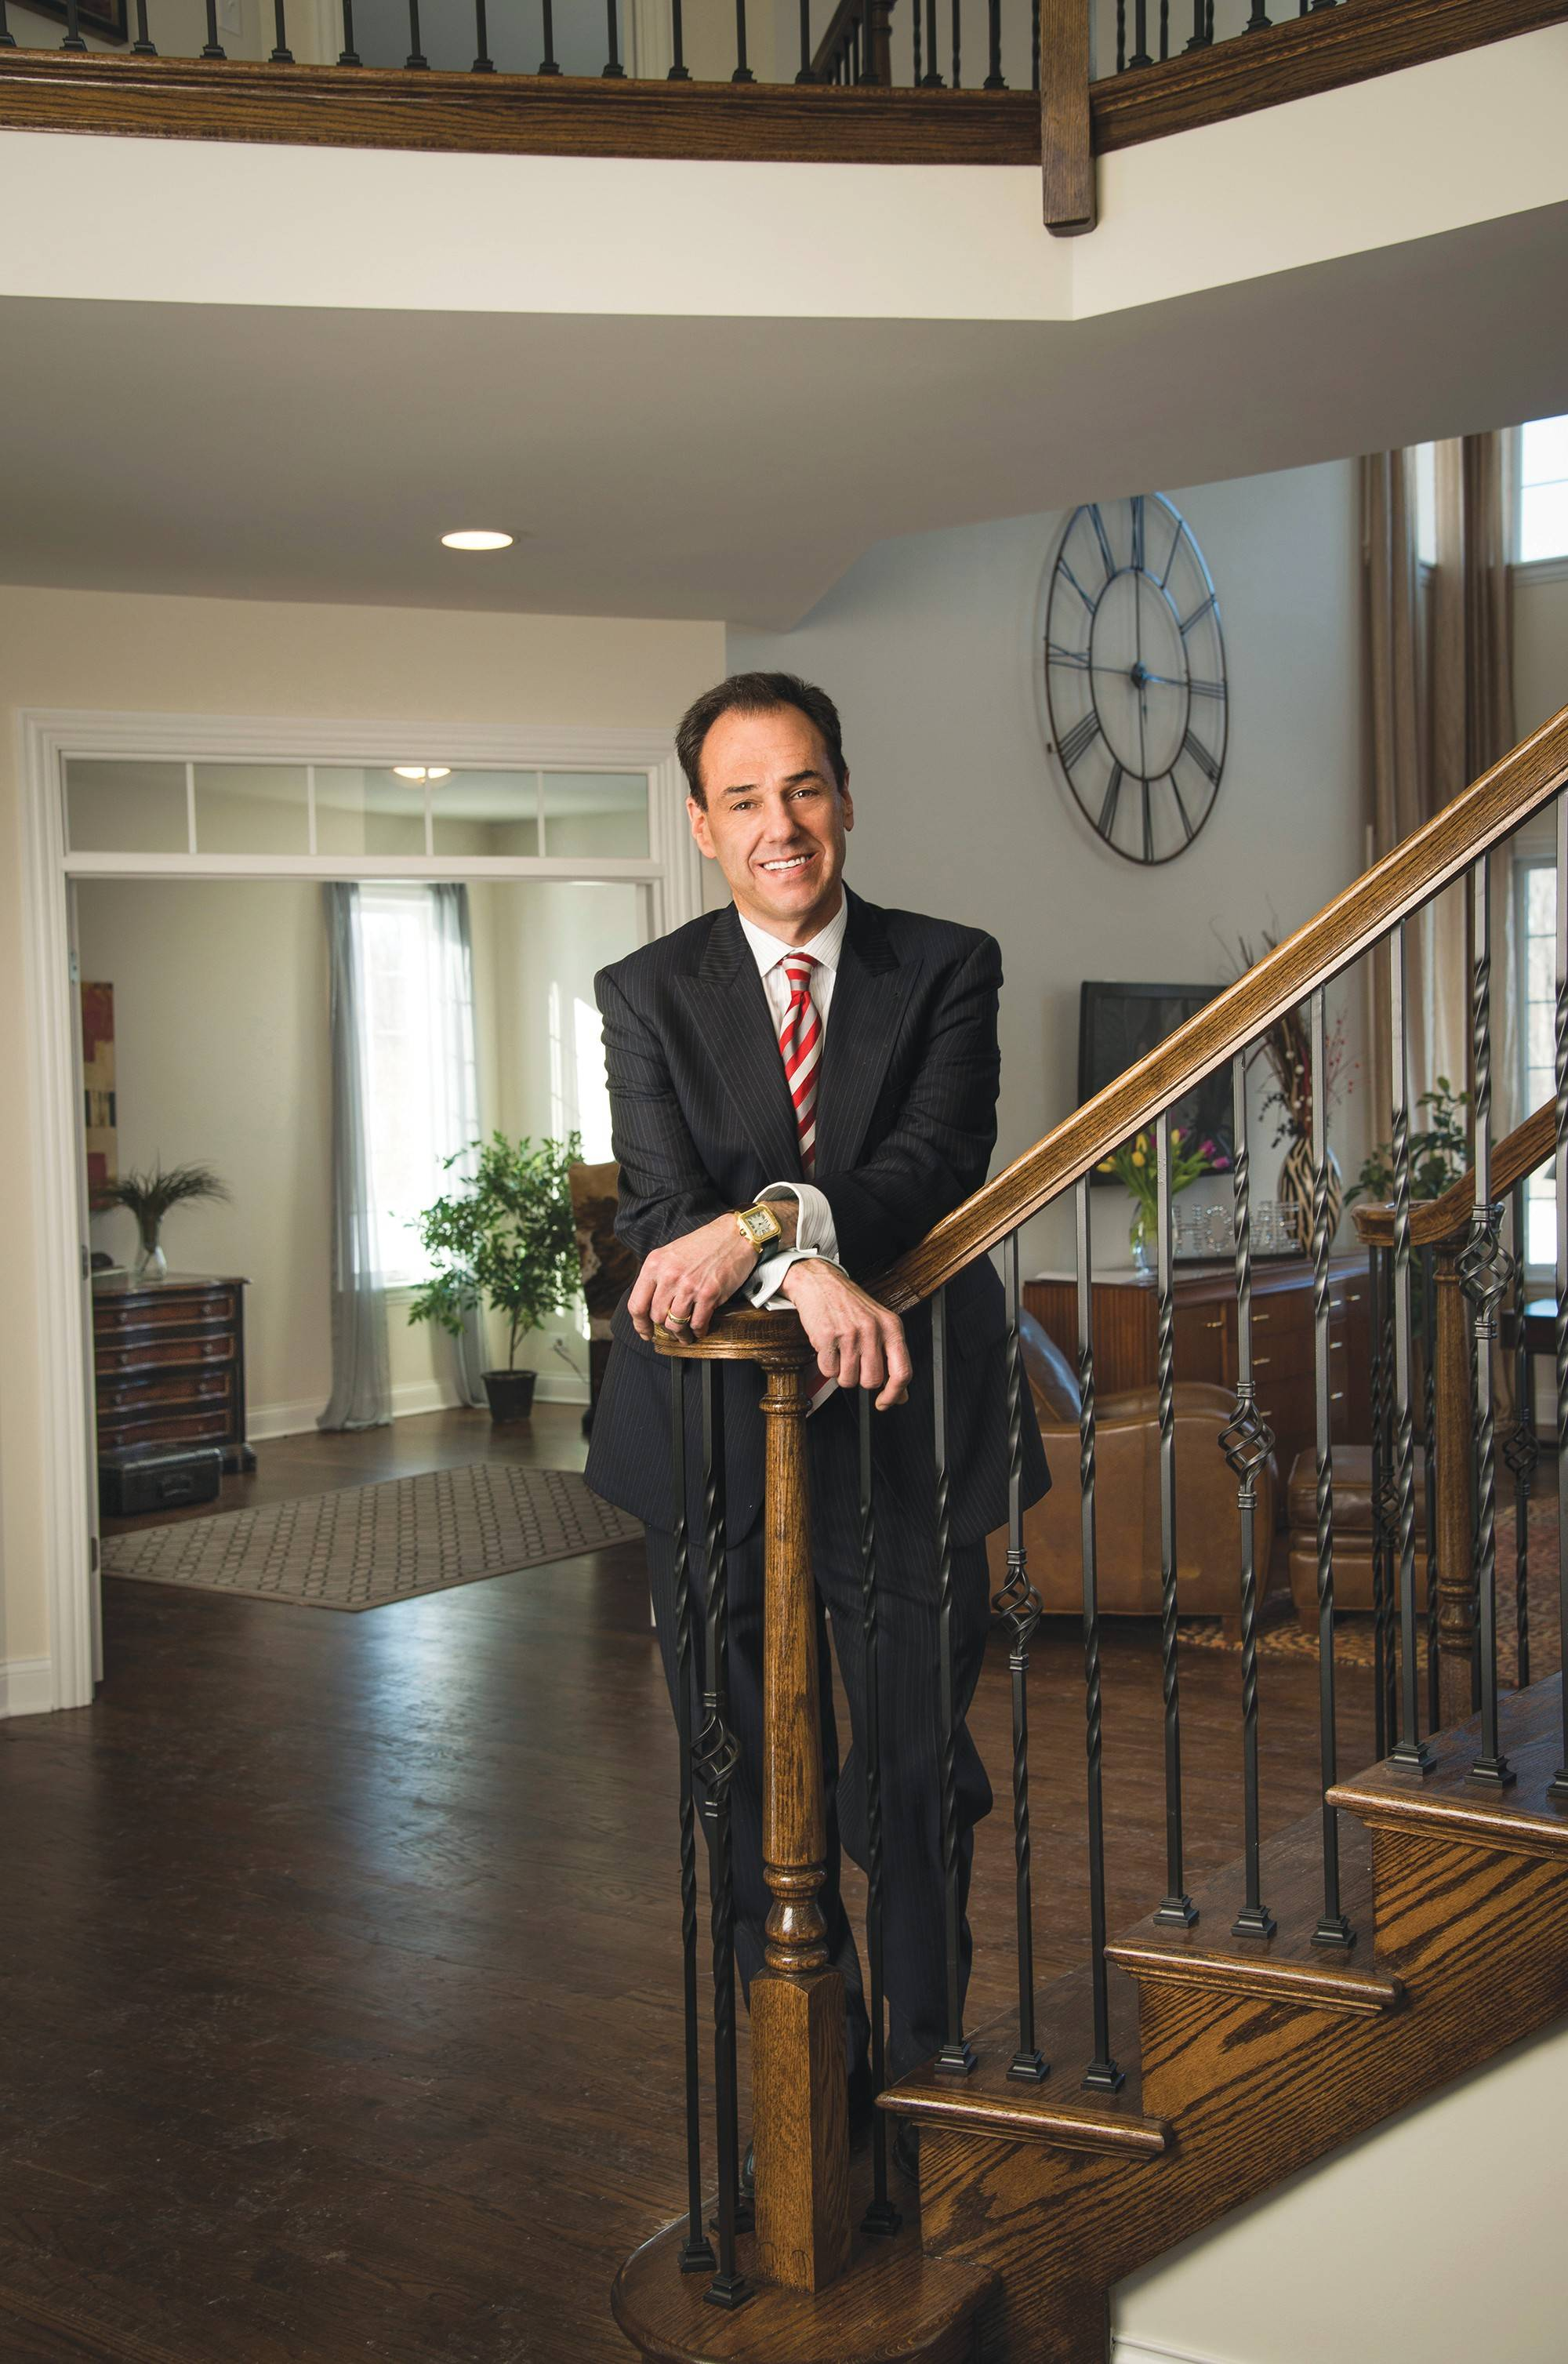 Jeff Benach, co-principal for Lexington Homes, says the company now does things much differently after the Great Recession.